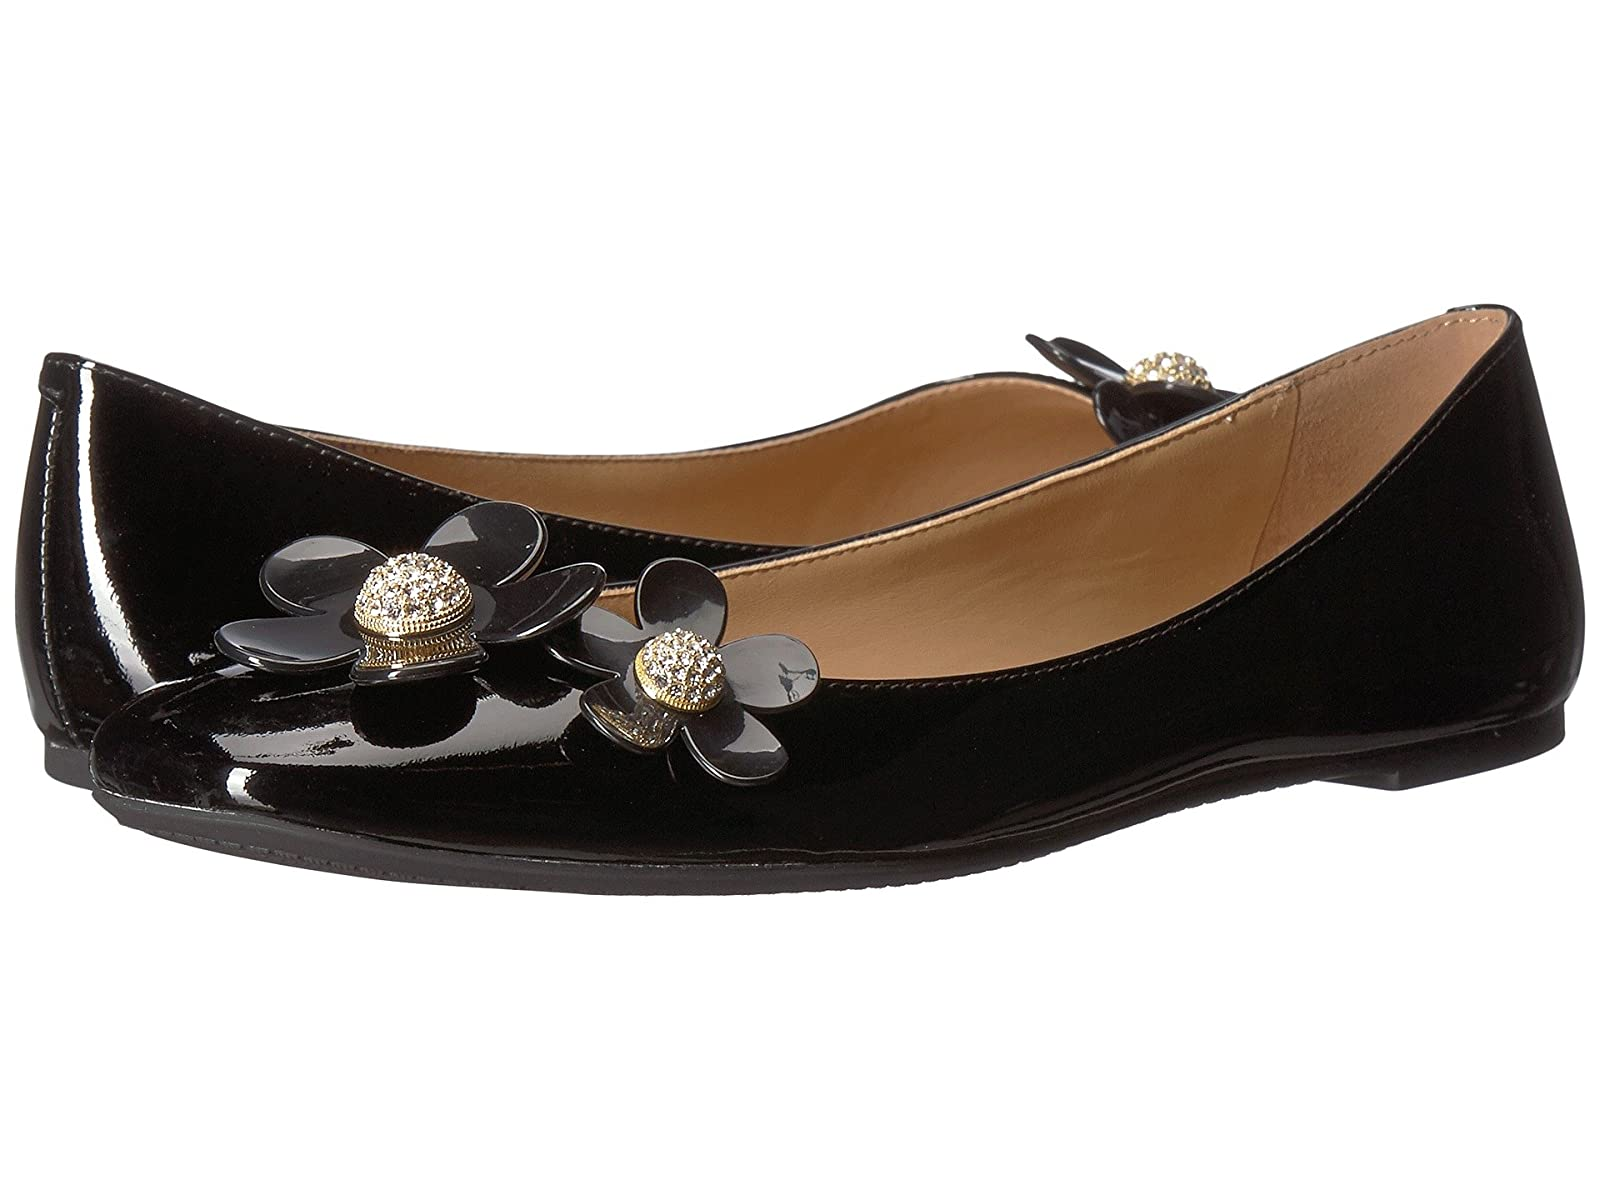 Marc Jacobs Daisy Ballerina FlatCheap and distinctive eye-catching shoes